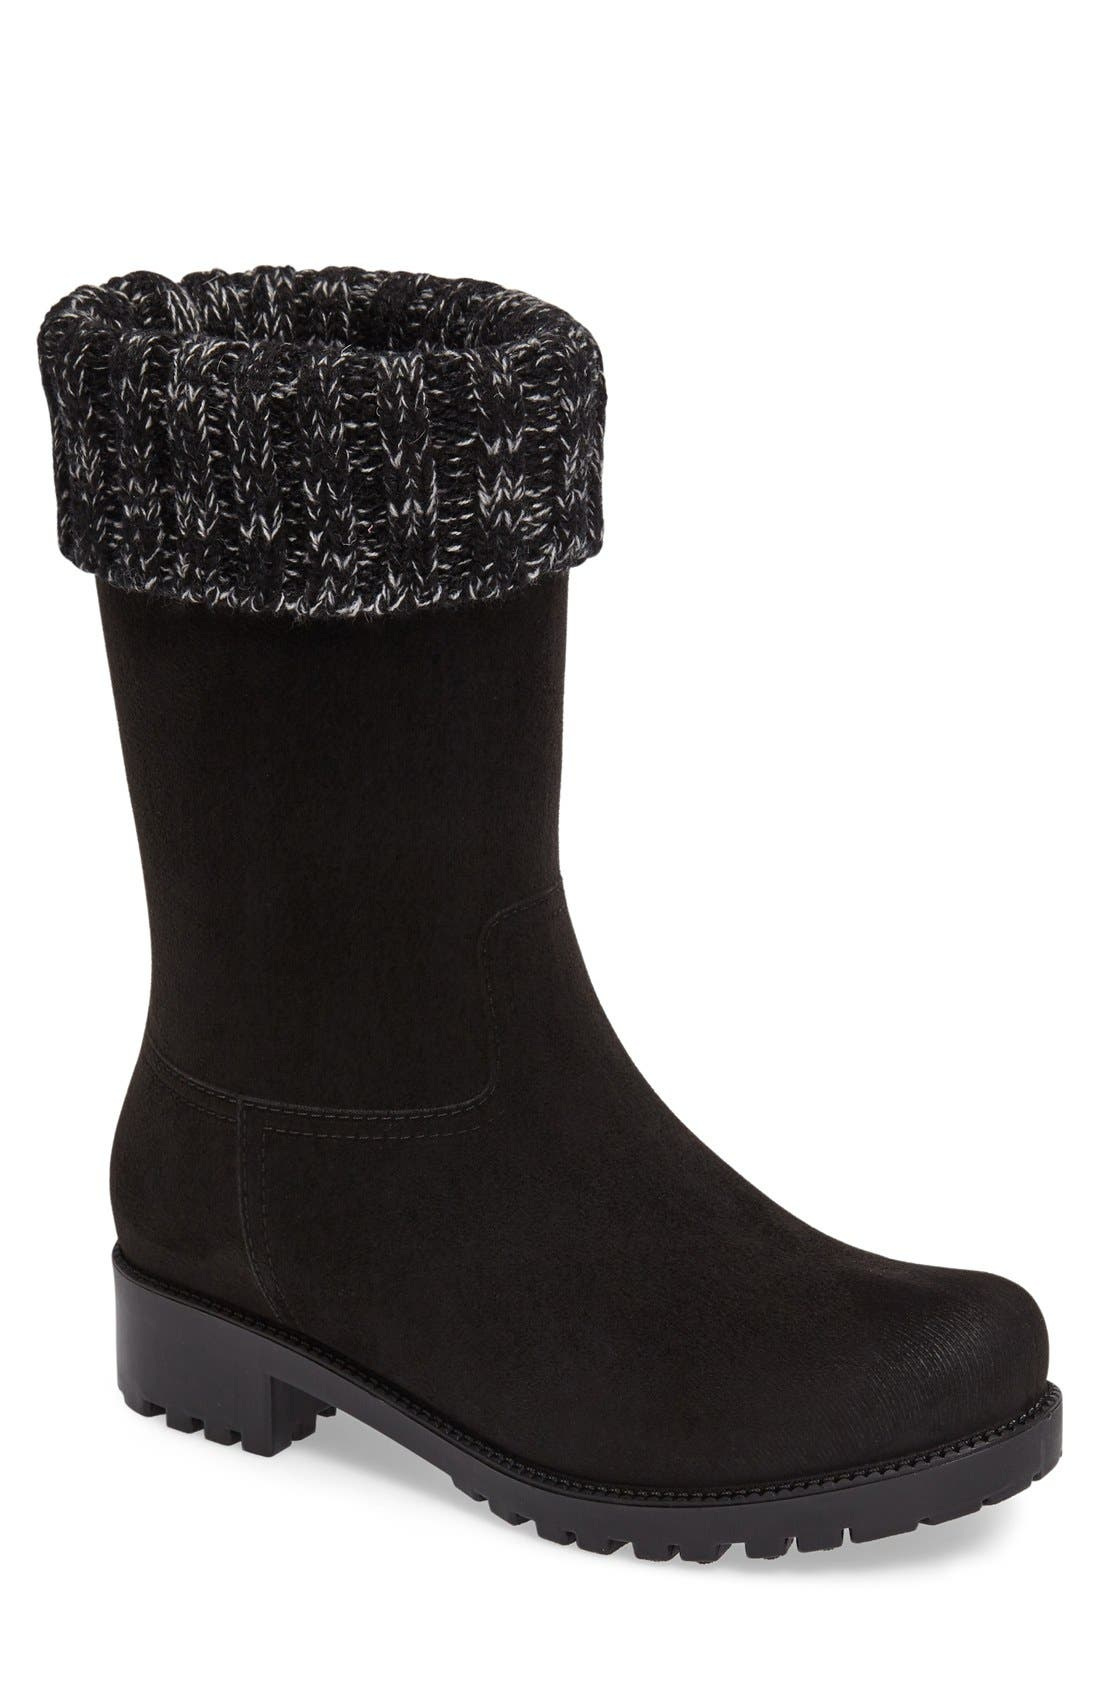 Main Image - däv Shelby Knit Cuff Waterproof Boot (Women's Shoes)